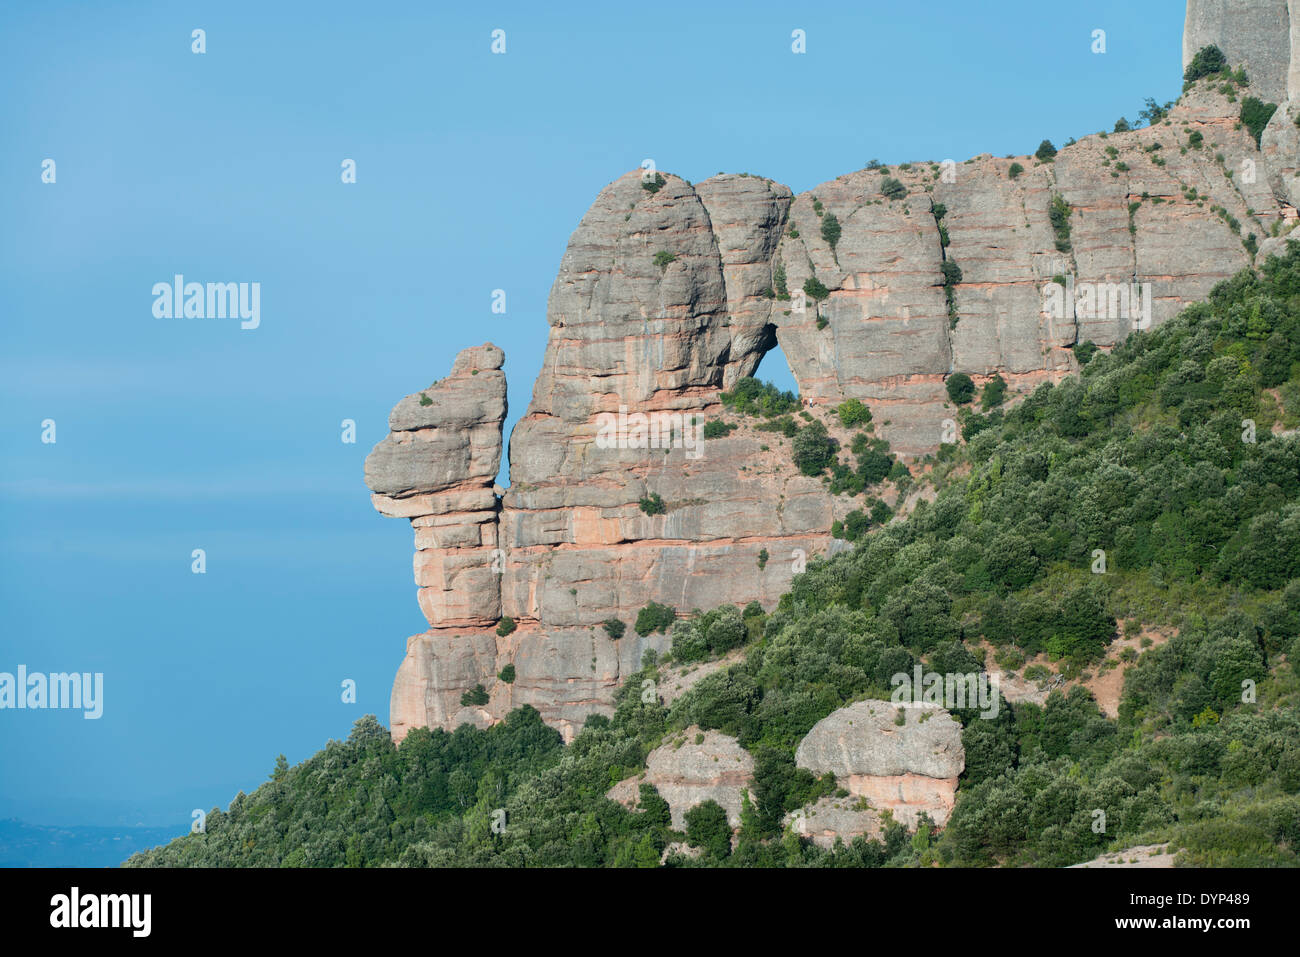 Detail known as the Little Chair with rock hole in the Montserrat mountain range, Catalonia, Spain - Stock Image